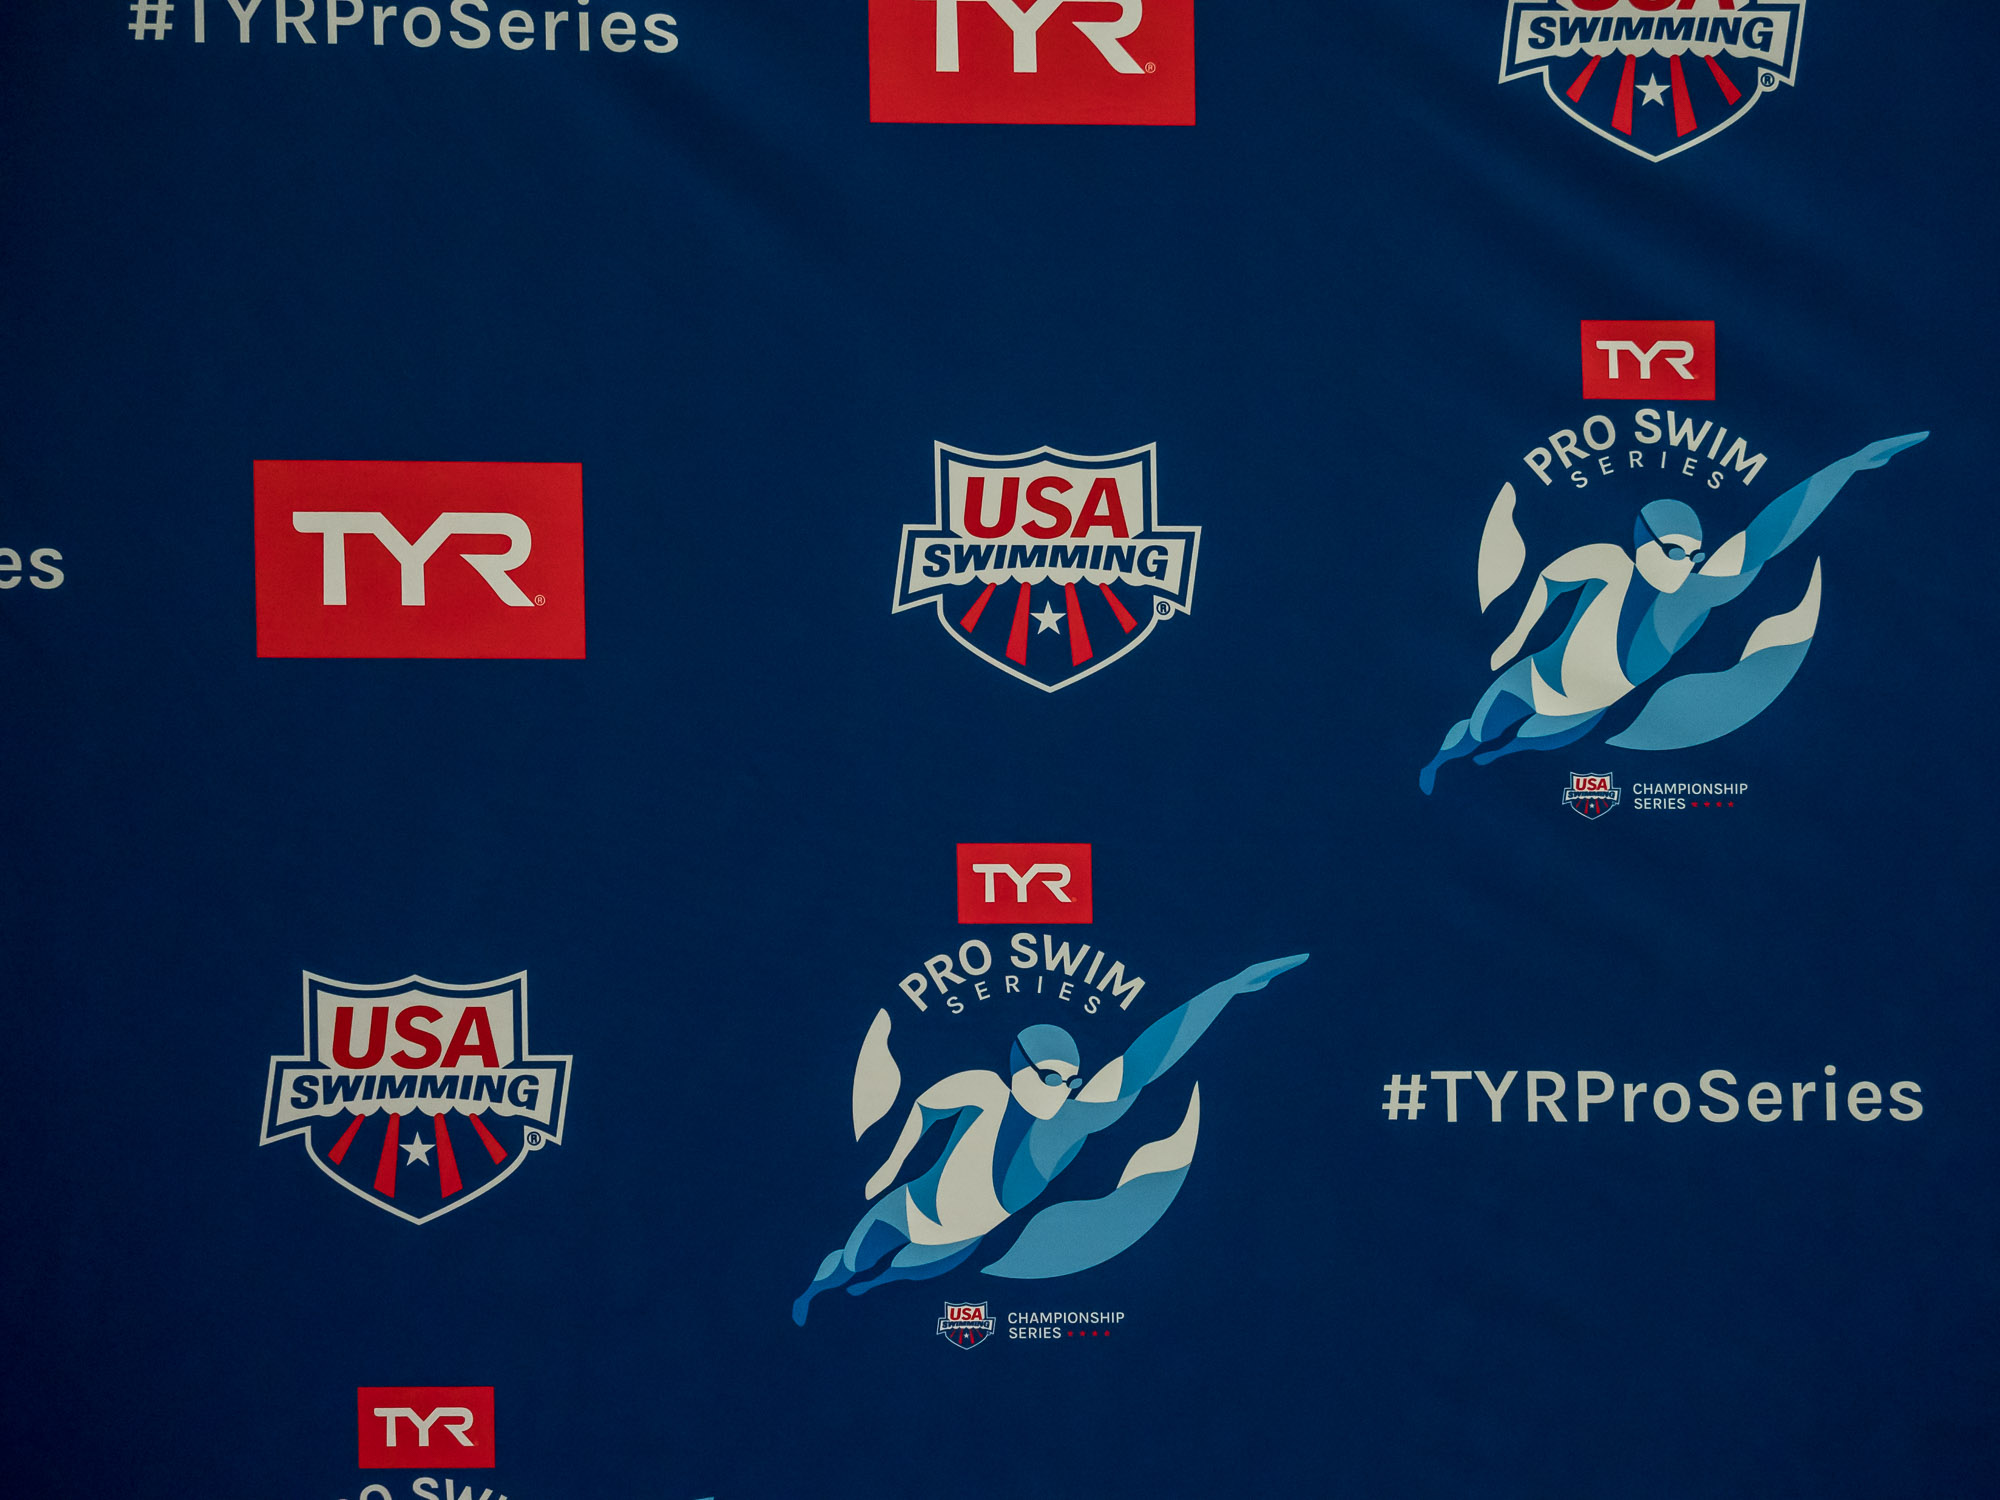 2019 TYR Pro Swim Series Sites Announced; All Four New Sites - Swimming World News